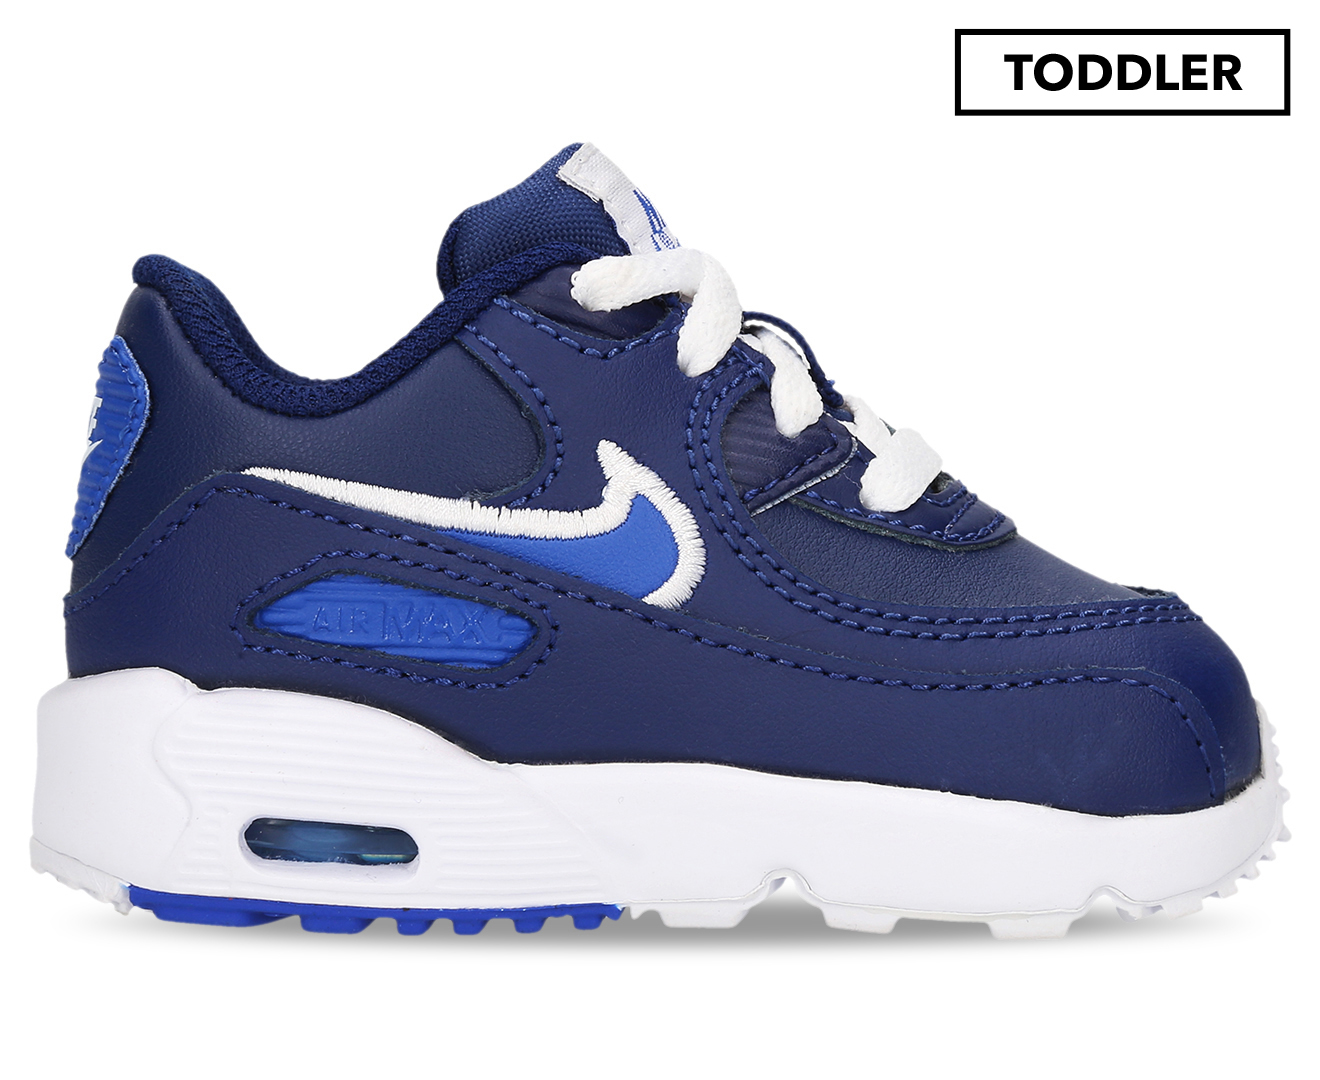 Details about Nike Toddler Boys' Air Max 90 Leather Shoe Blue VoidGame Royal White